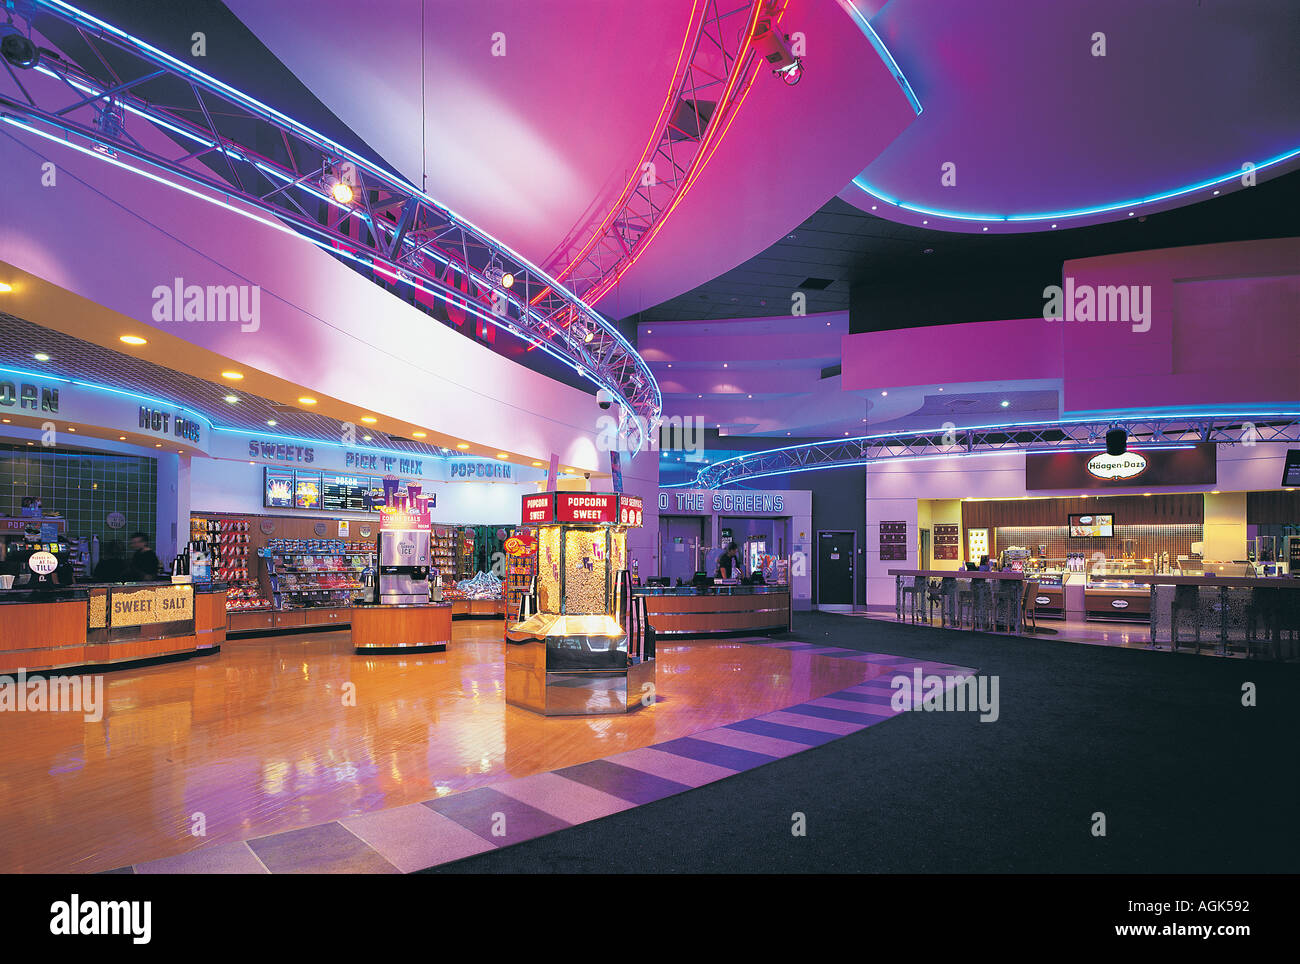 El Gate cinema Newgate Street Newcastle Upon Tyne UK Imagen De Stock